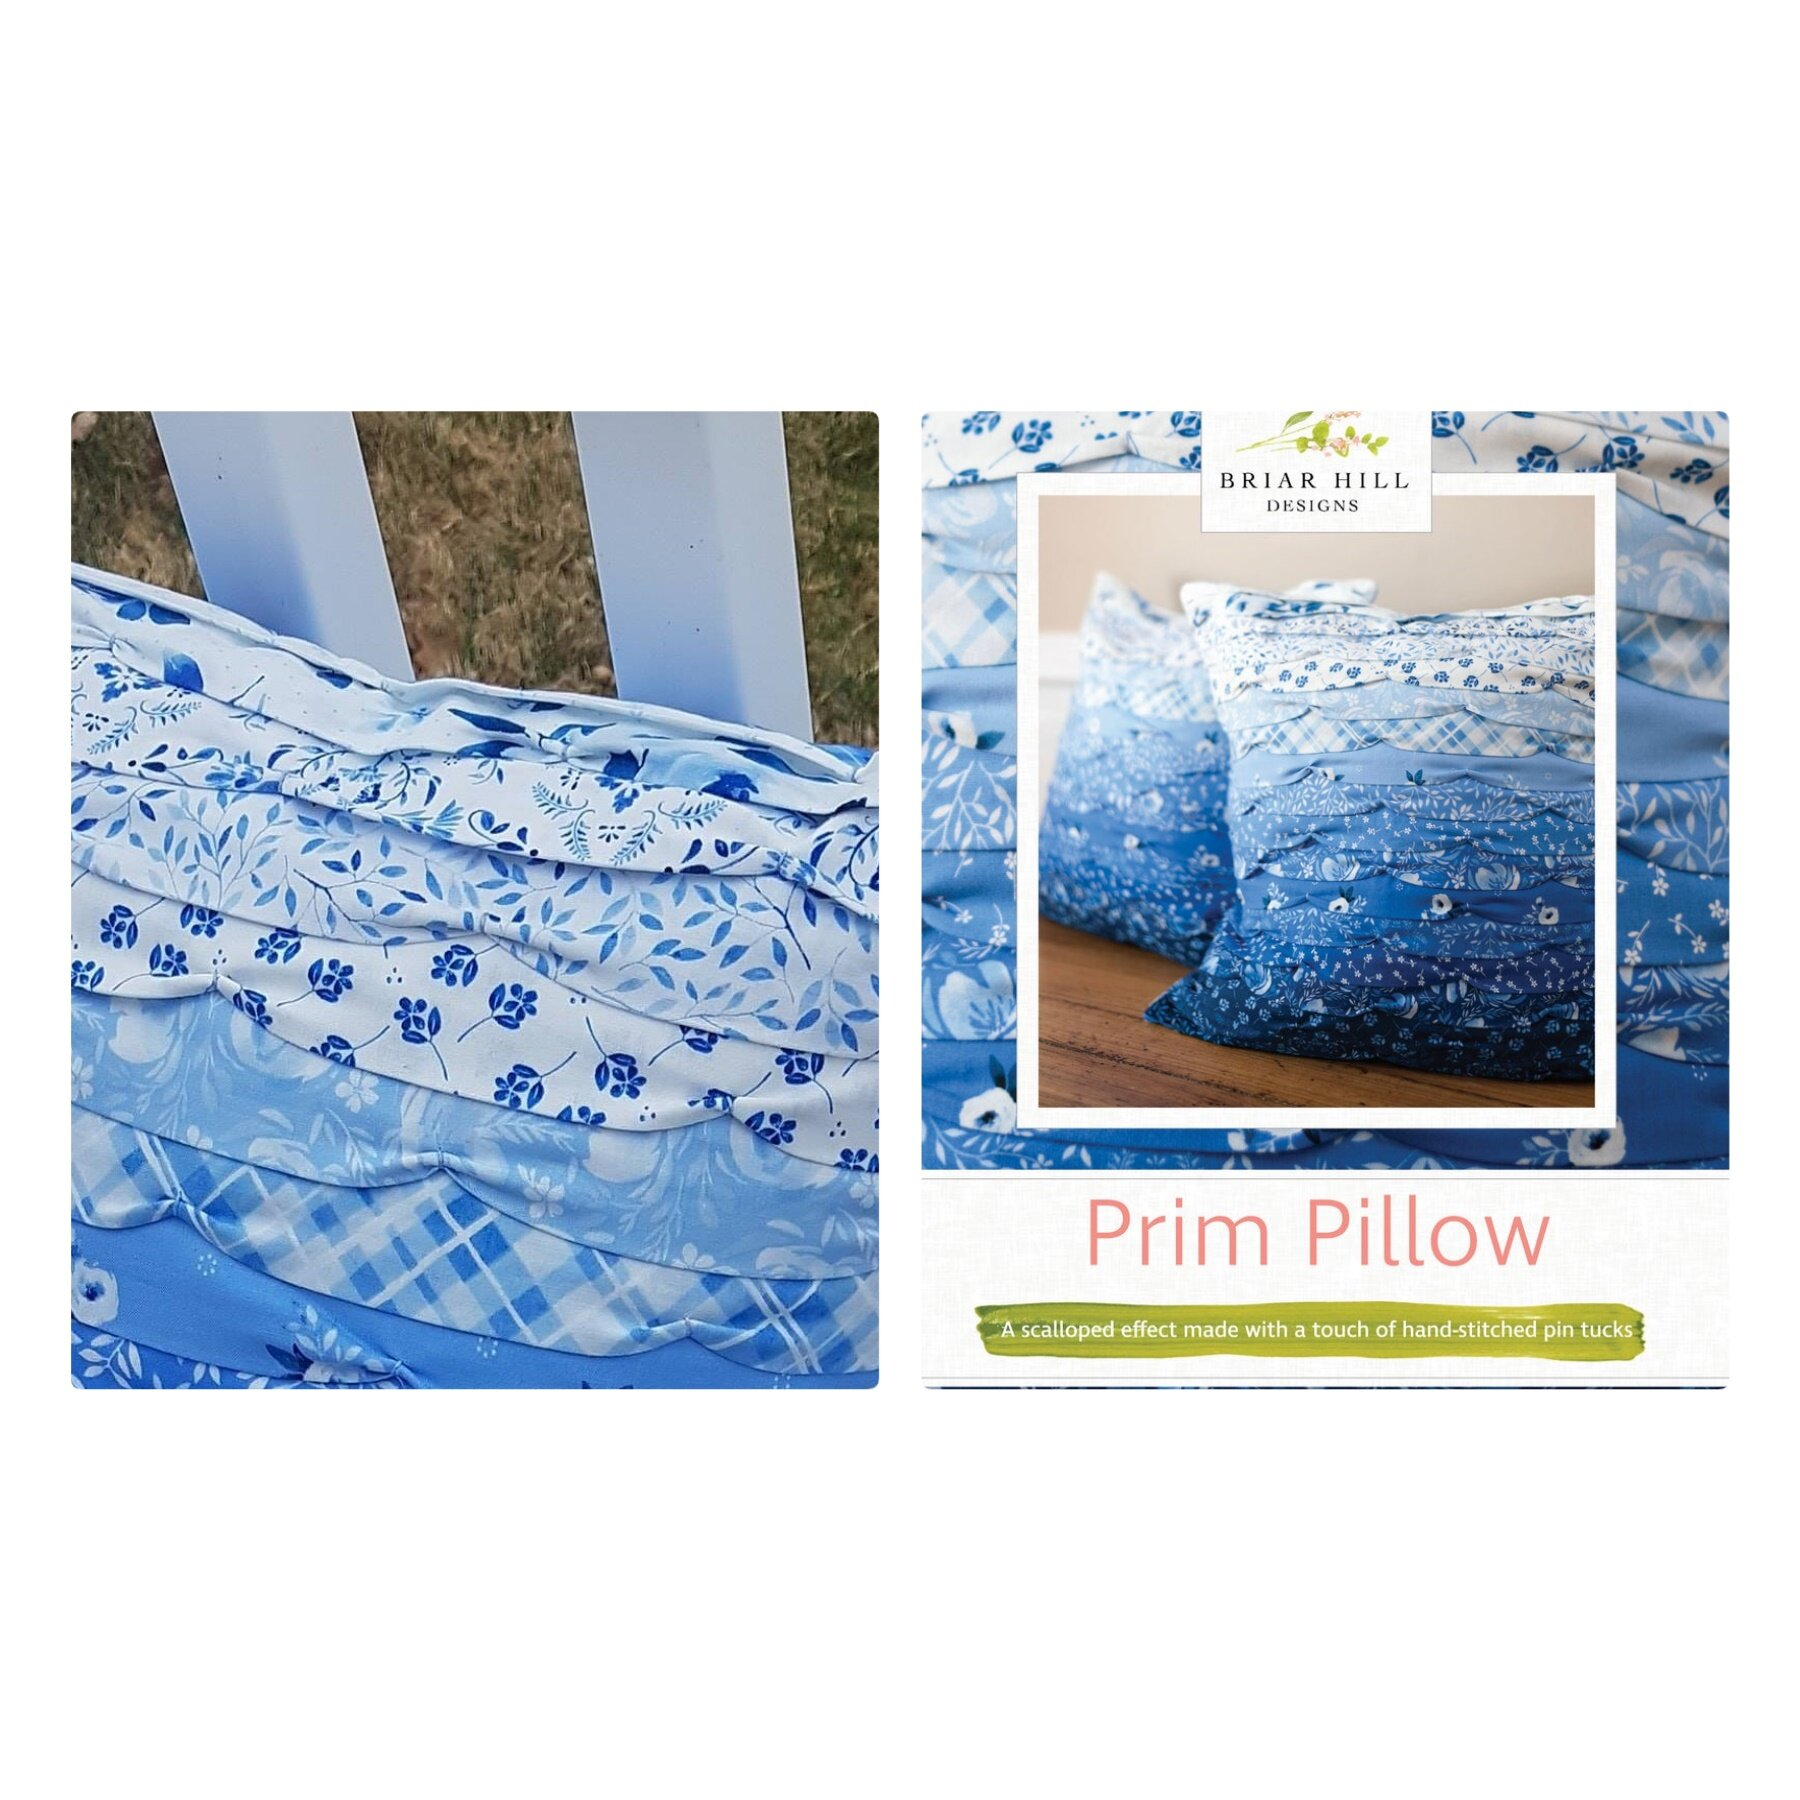 Prim pillow collage.jpg